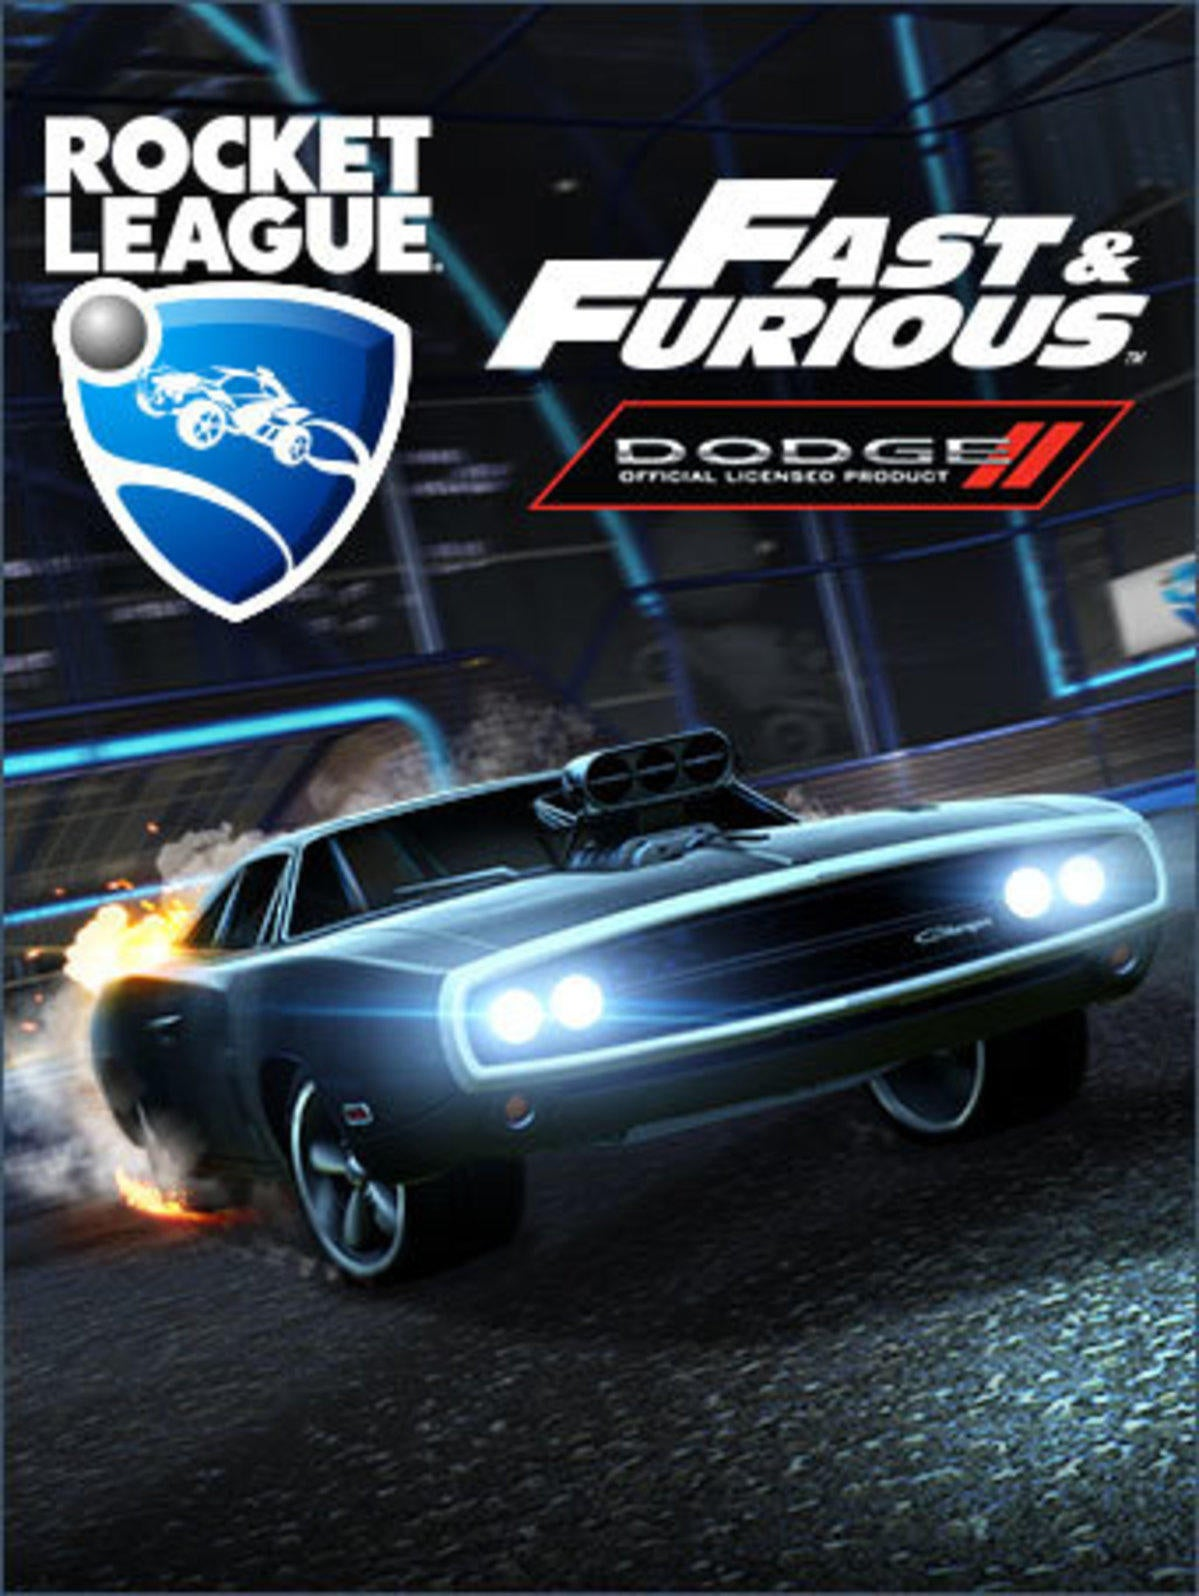 Charger Rt Dodge Charger R T Dodge Black Tires Muscle: The Fast & Furious™ Dodge® Charger R/T